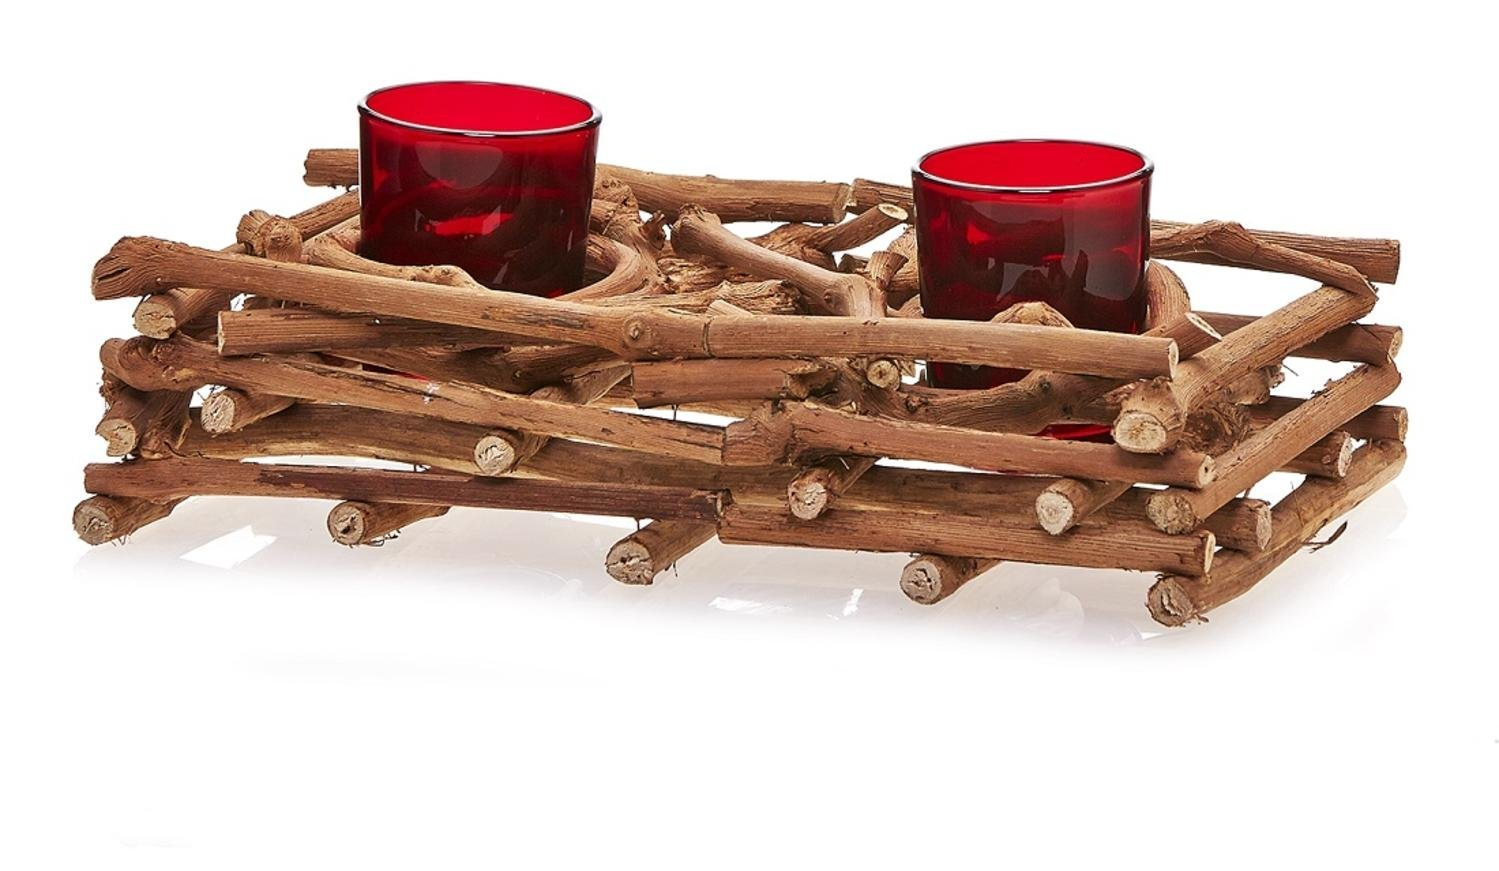 CC Home Furnishings Pack of 2 Country Rustic Natural Brown Wood Branch Christmas Double Candle Holders 10''